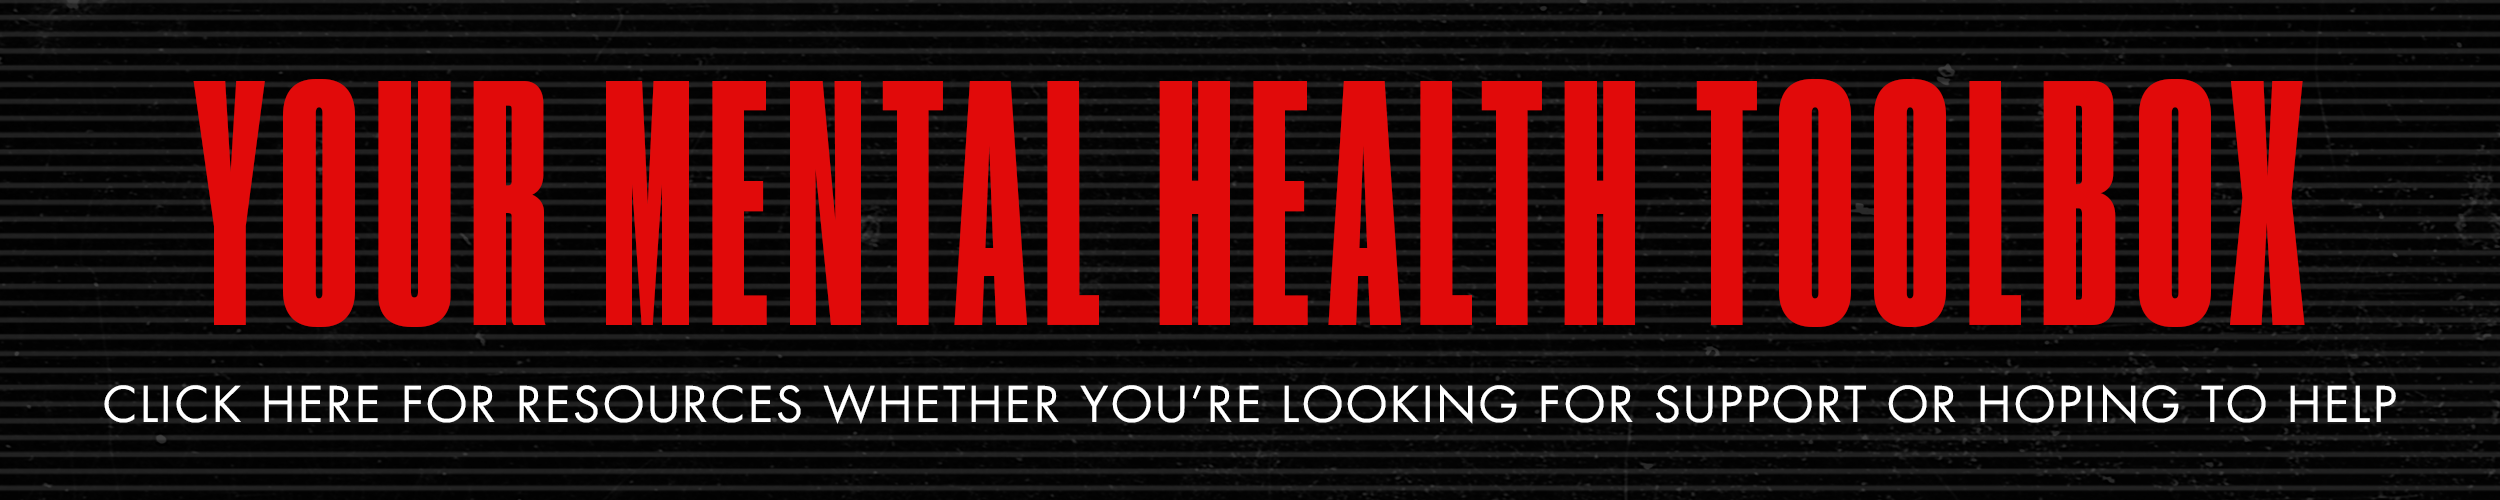 Mental Health Toolbox Banner